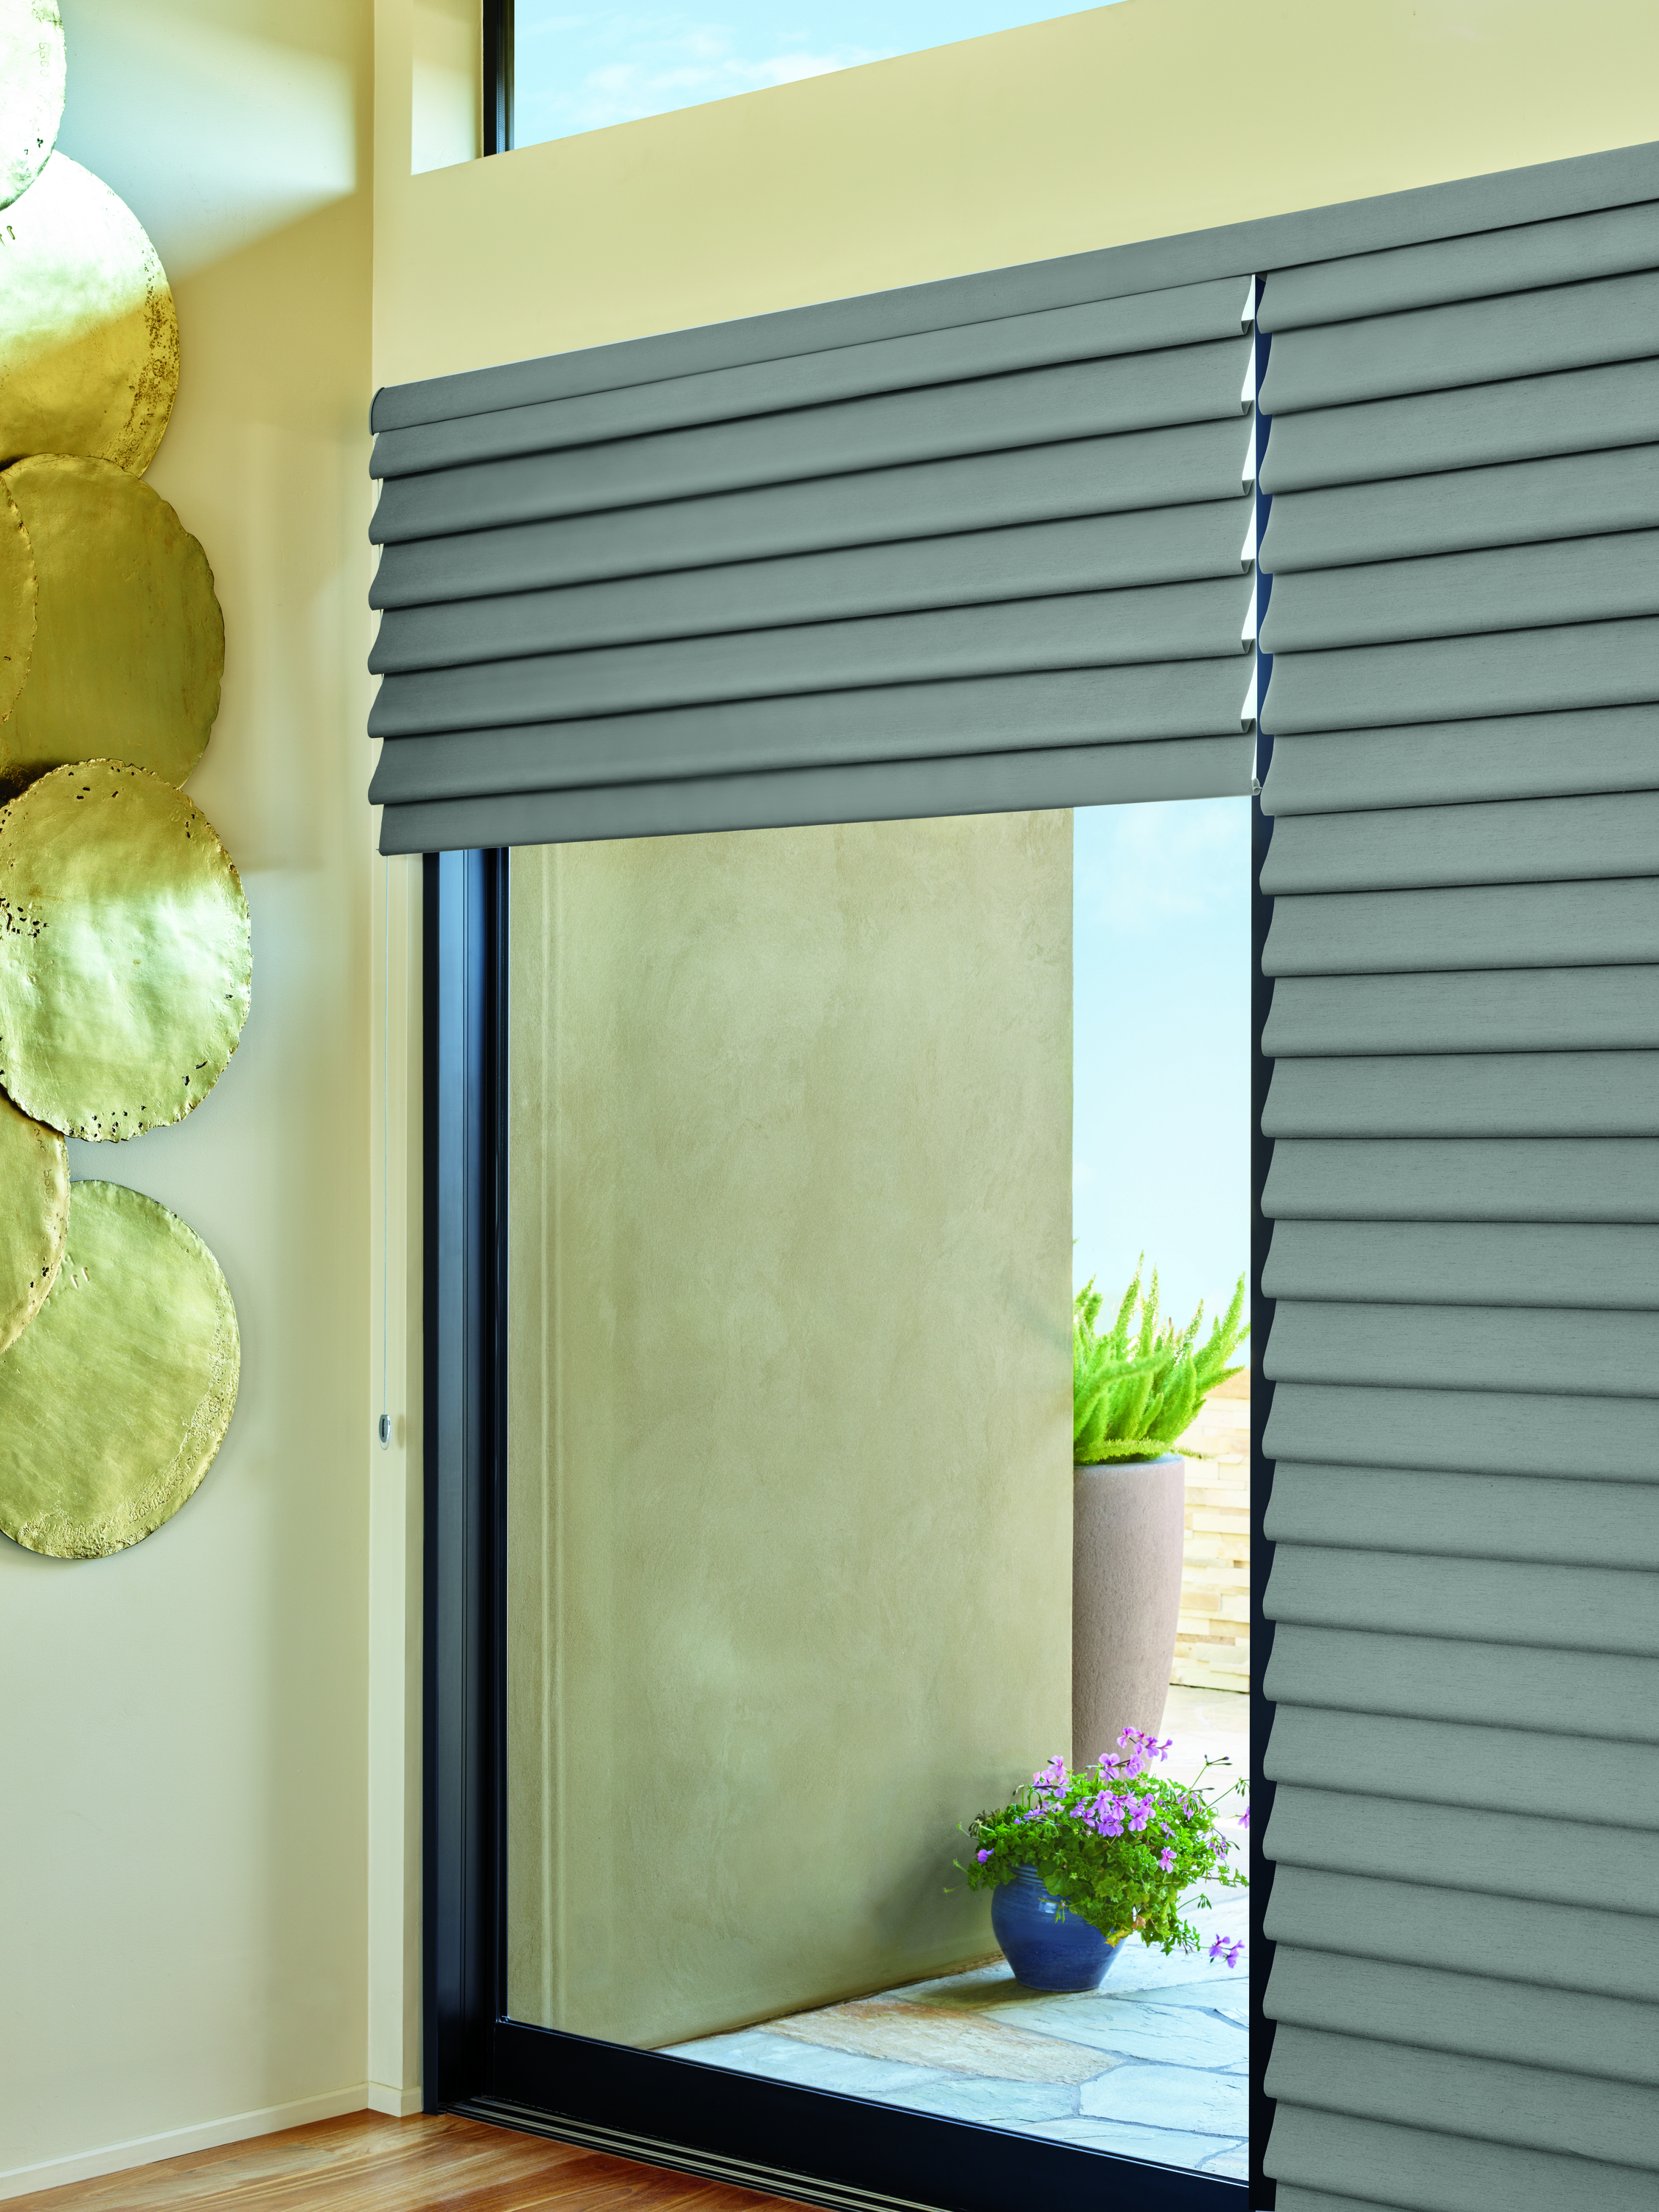 Modern Roman Shades - Uniform contoured or flat-fabric folds with no exposed rear cords align over our sliding glass door. Now available with the Duo-Lite feature.Pros: When you want a roman shade for a patio door, do consider Modern Roman Shades. Fabric folds are lighter and align easier for two-on-one applications.Cons: Modern Roman Shades do not provide all of the fabric selections and styles that a Custom Roman Shade will provide.Option: Bring the two together for one fabulous look. Create a custom hobbled-style valance in any fabric of your choosing to go over your Modern Roman Shades. Voila!